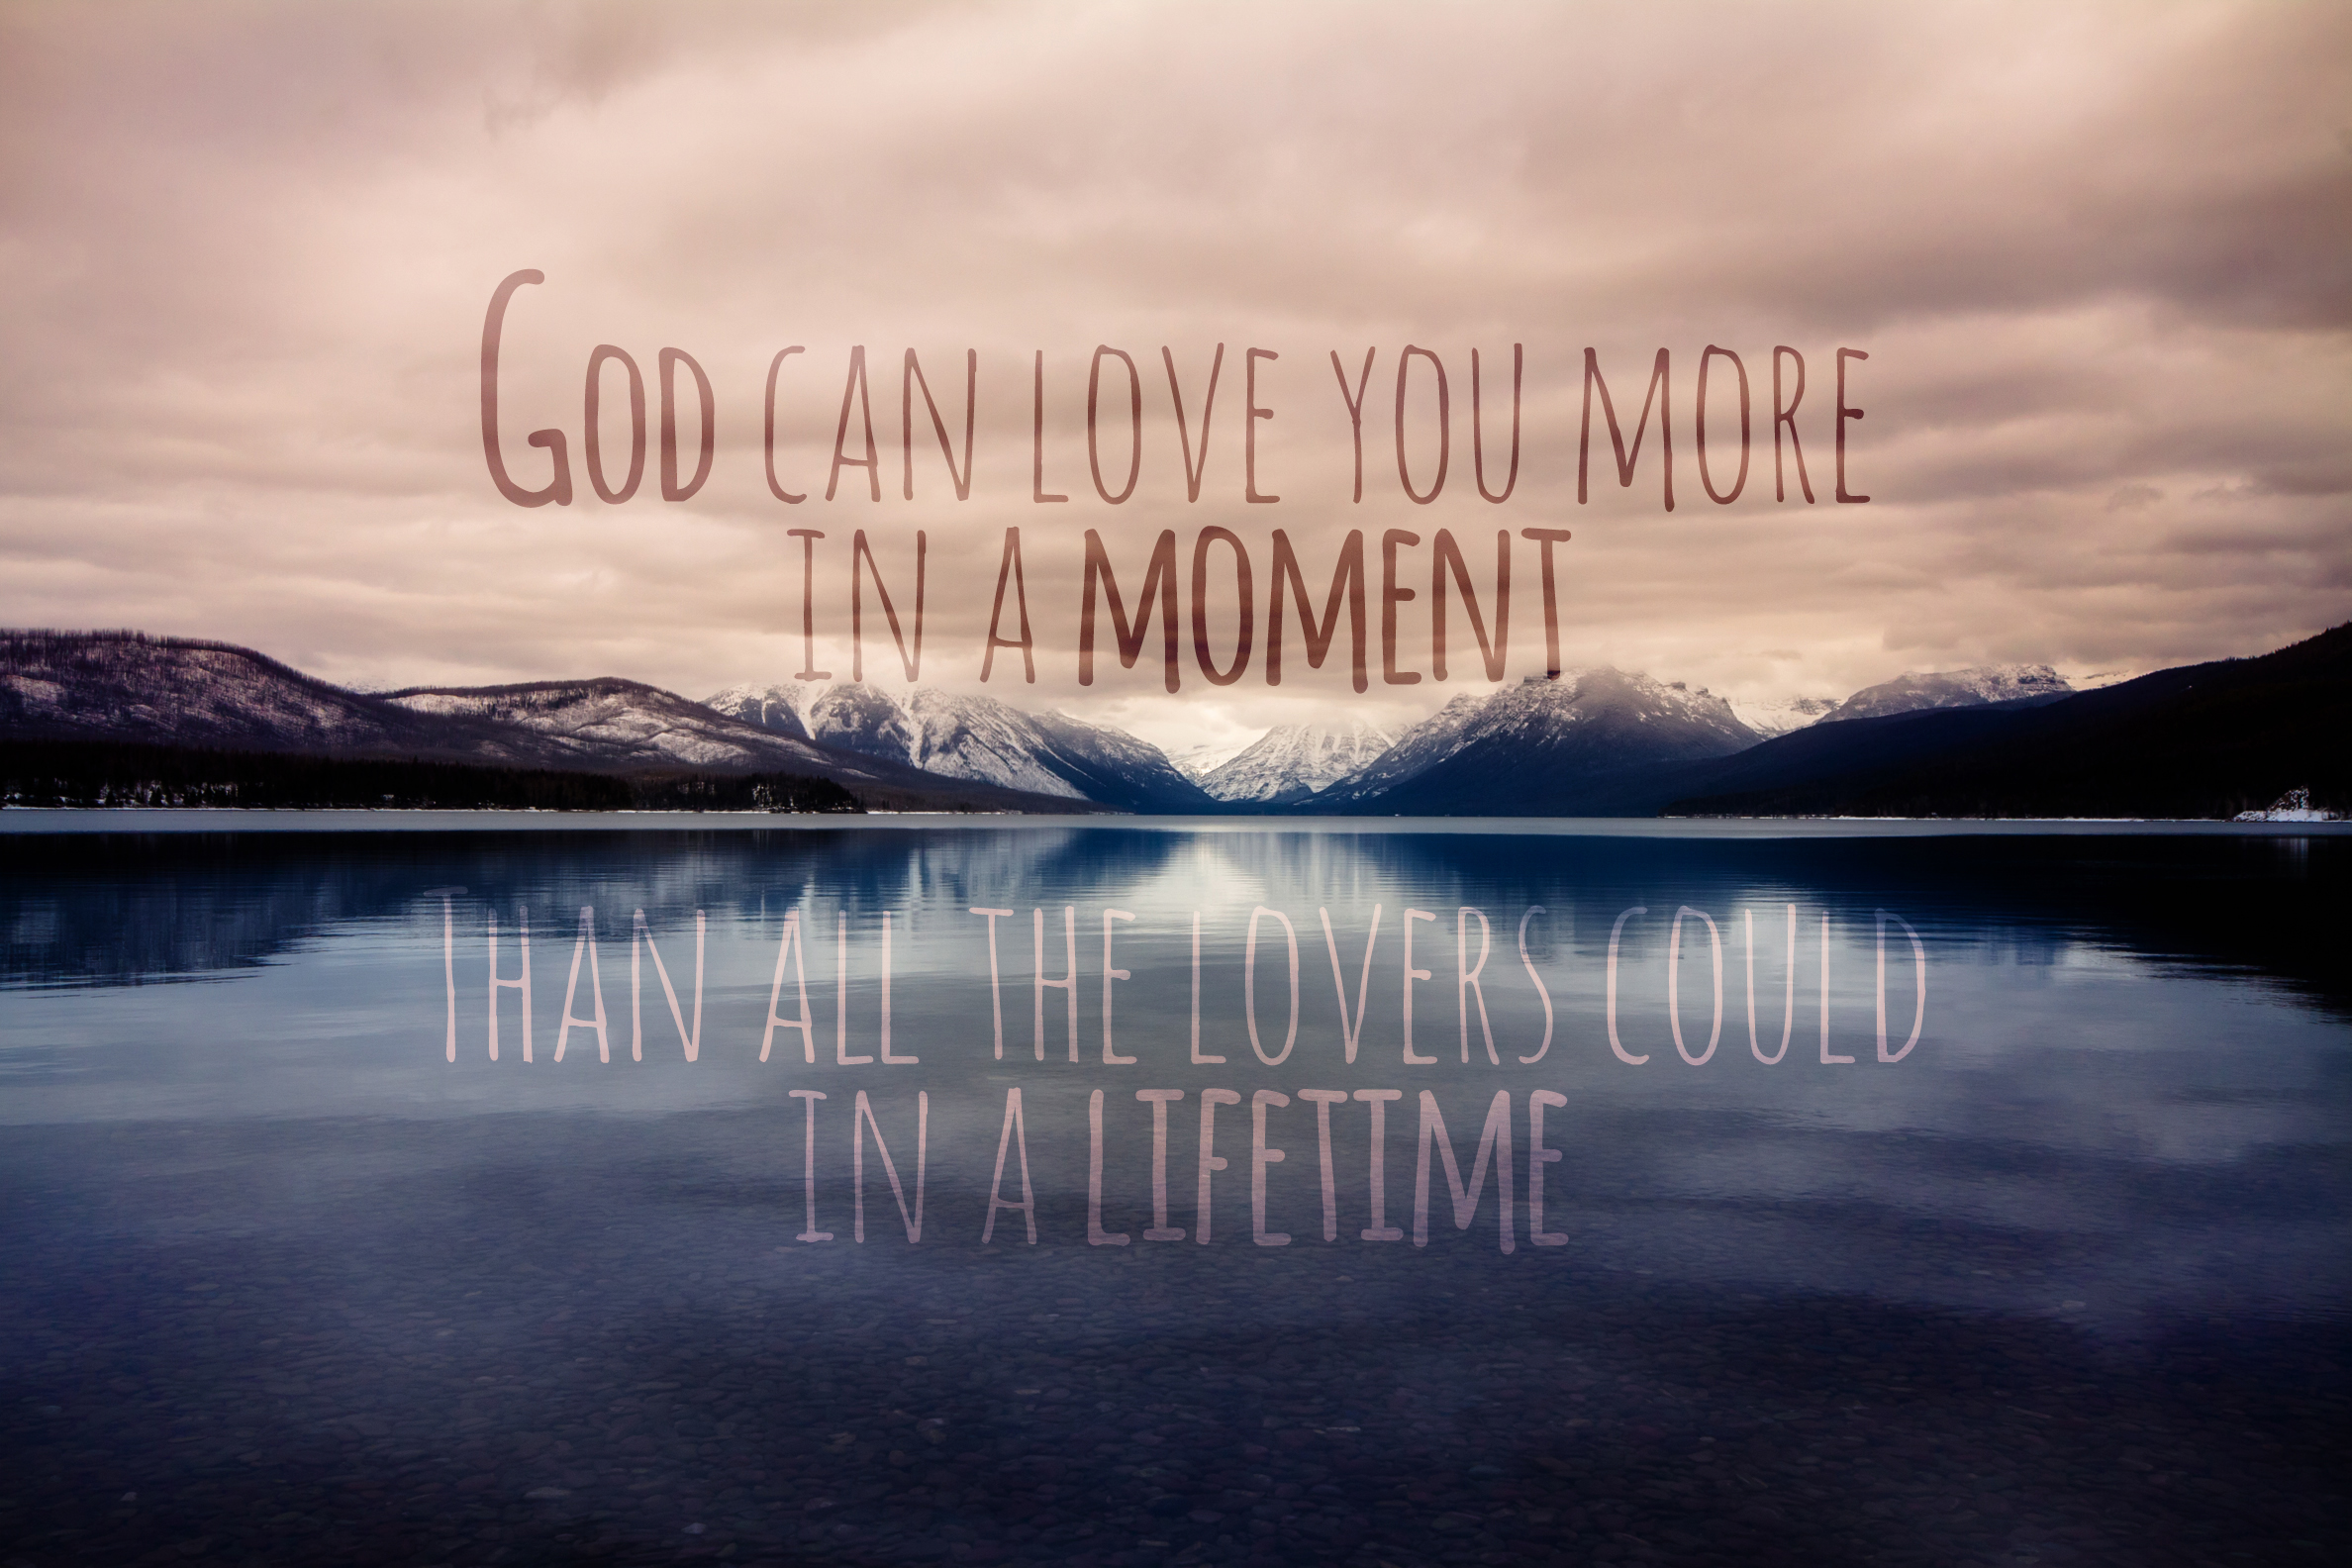 god can love you more